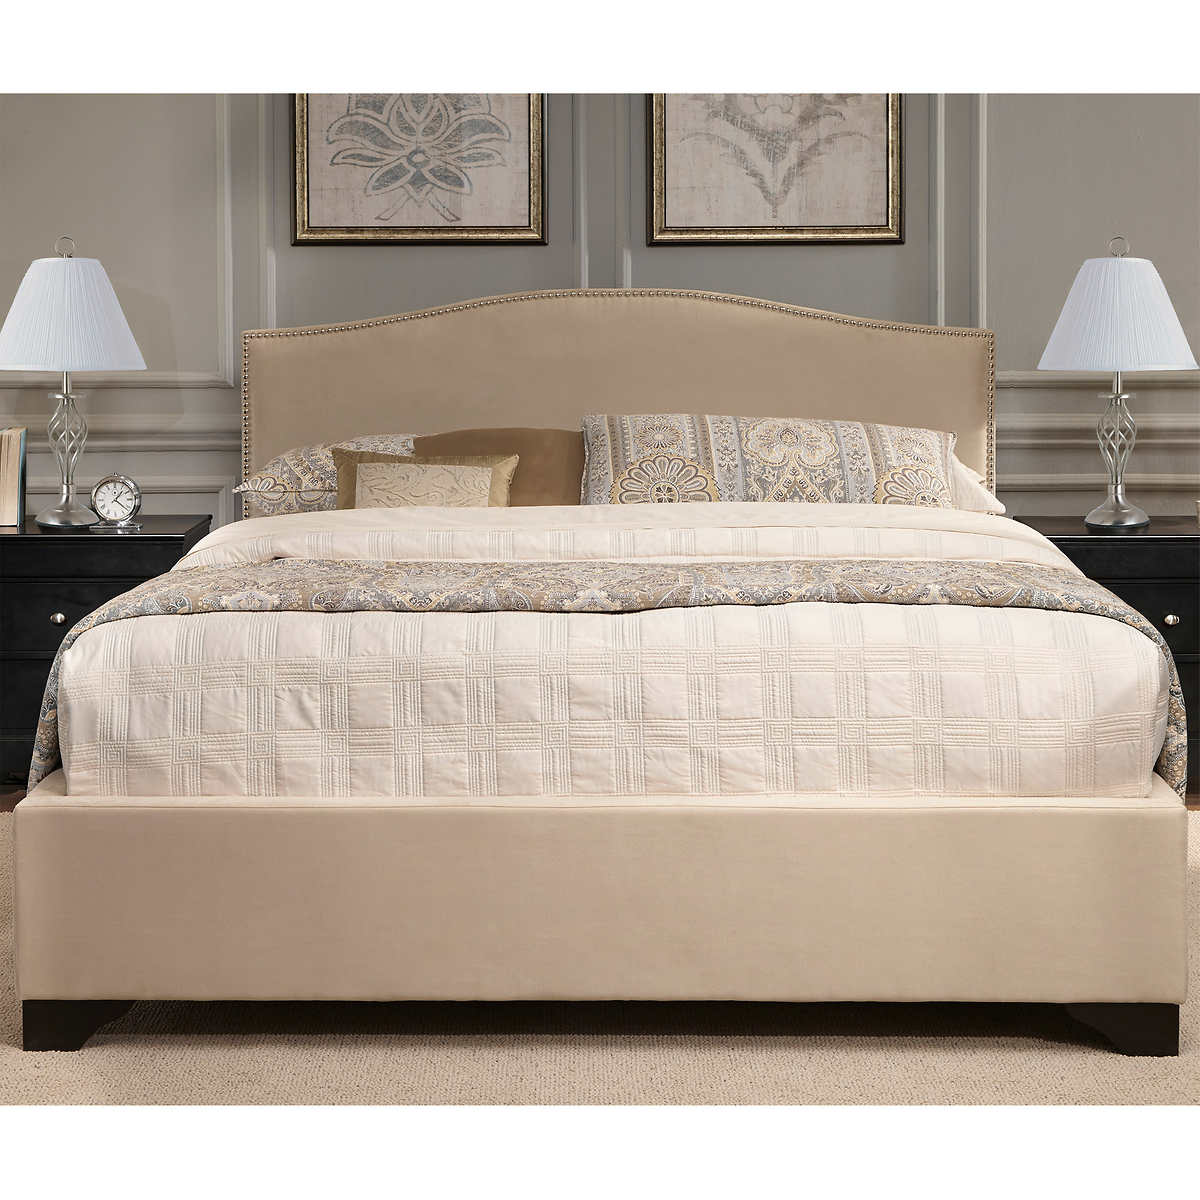 Jocelyn Cal King Upholstered Bed In Cream Fabric